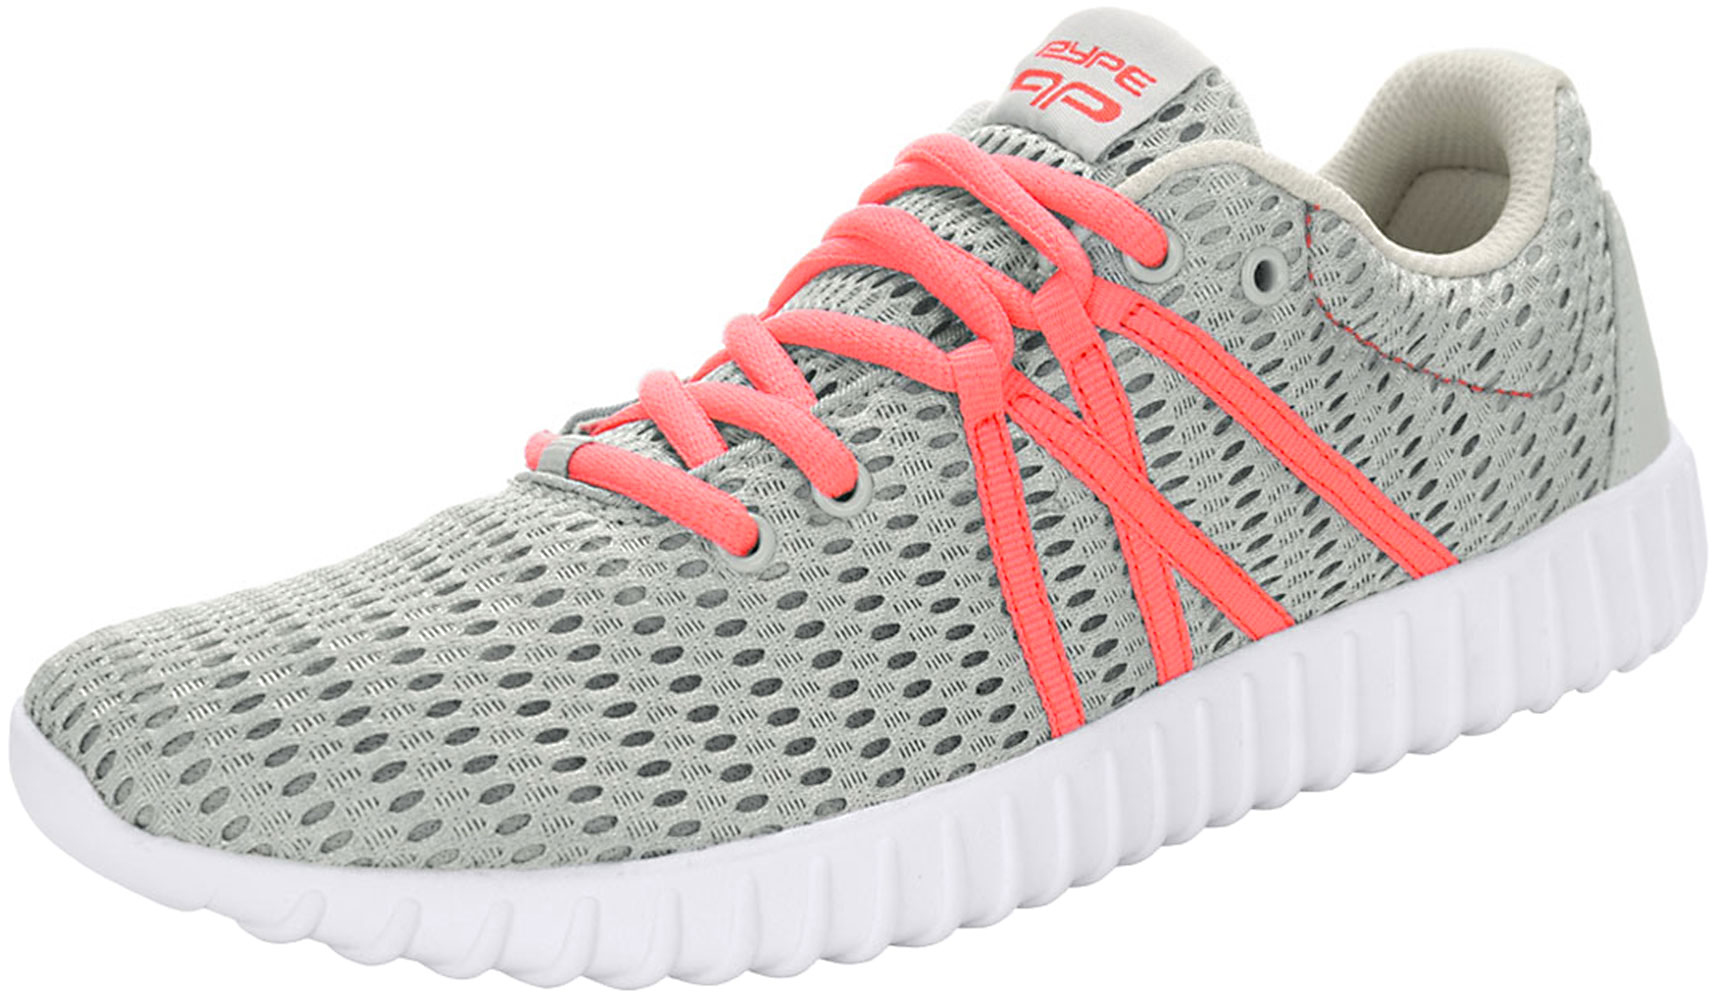 PYPE Women Contrast Color Lace Up Mesh Training Sneakers Gray US 10